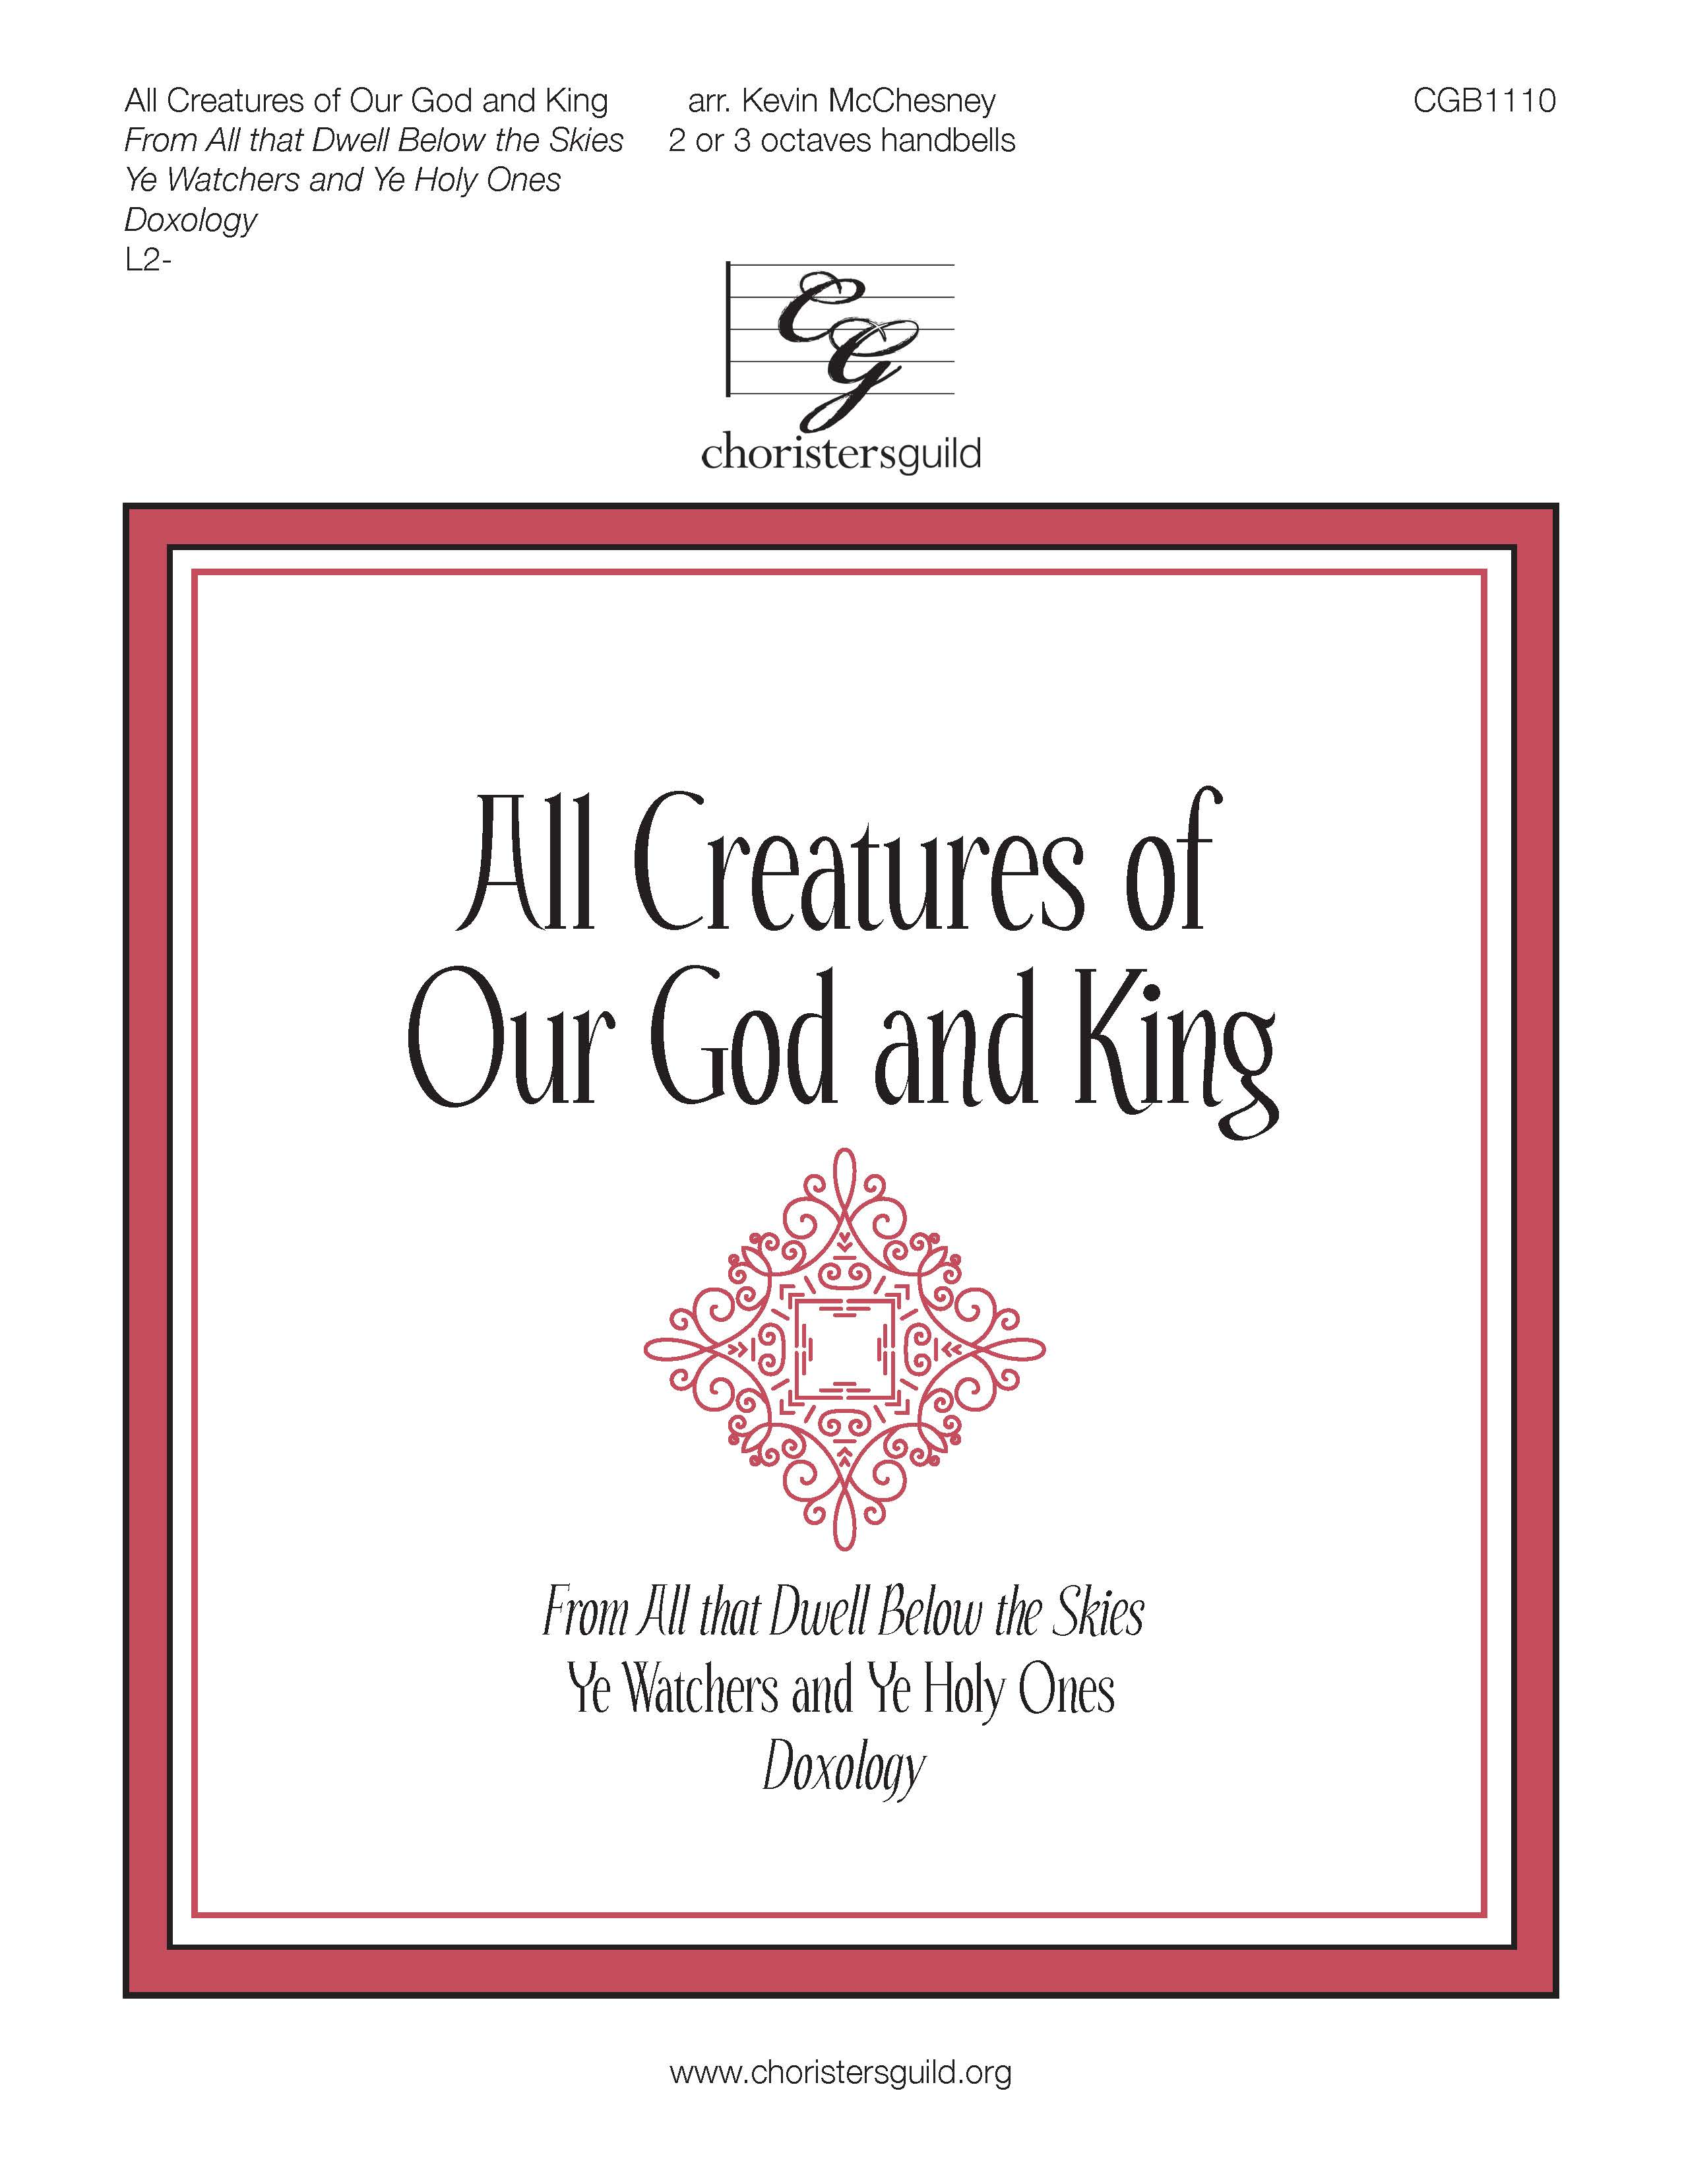 All Creatures of Our God and King - 2-3 octaves